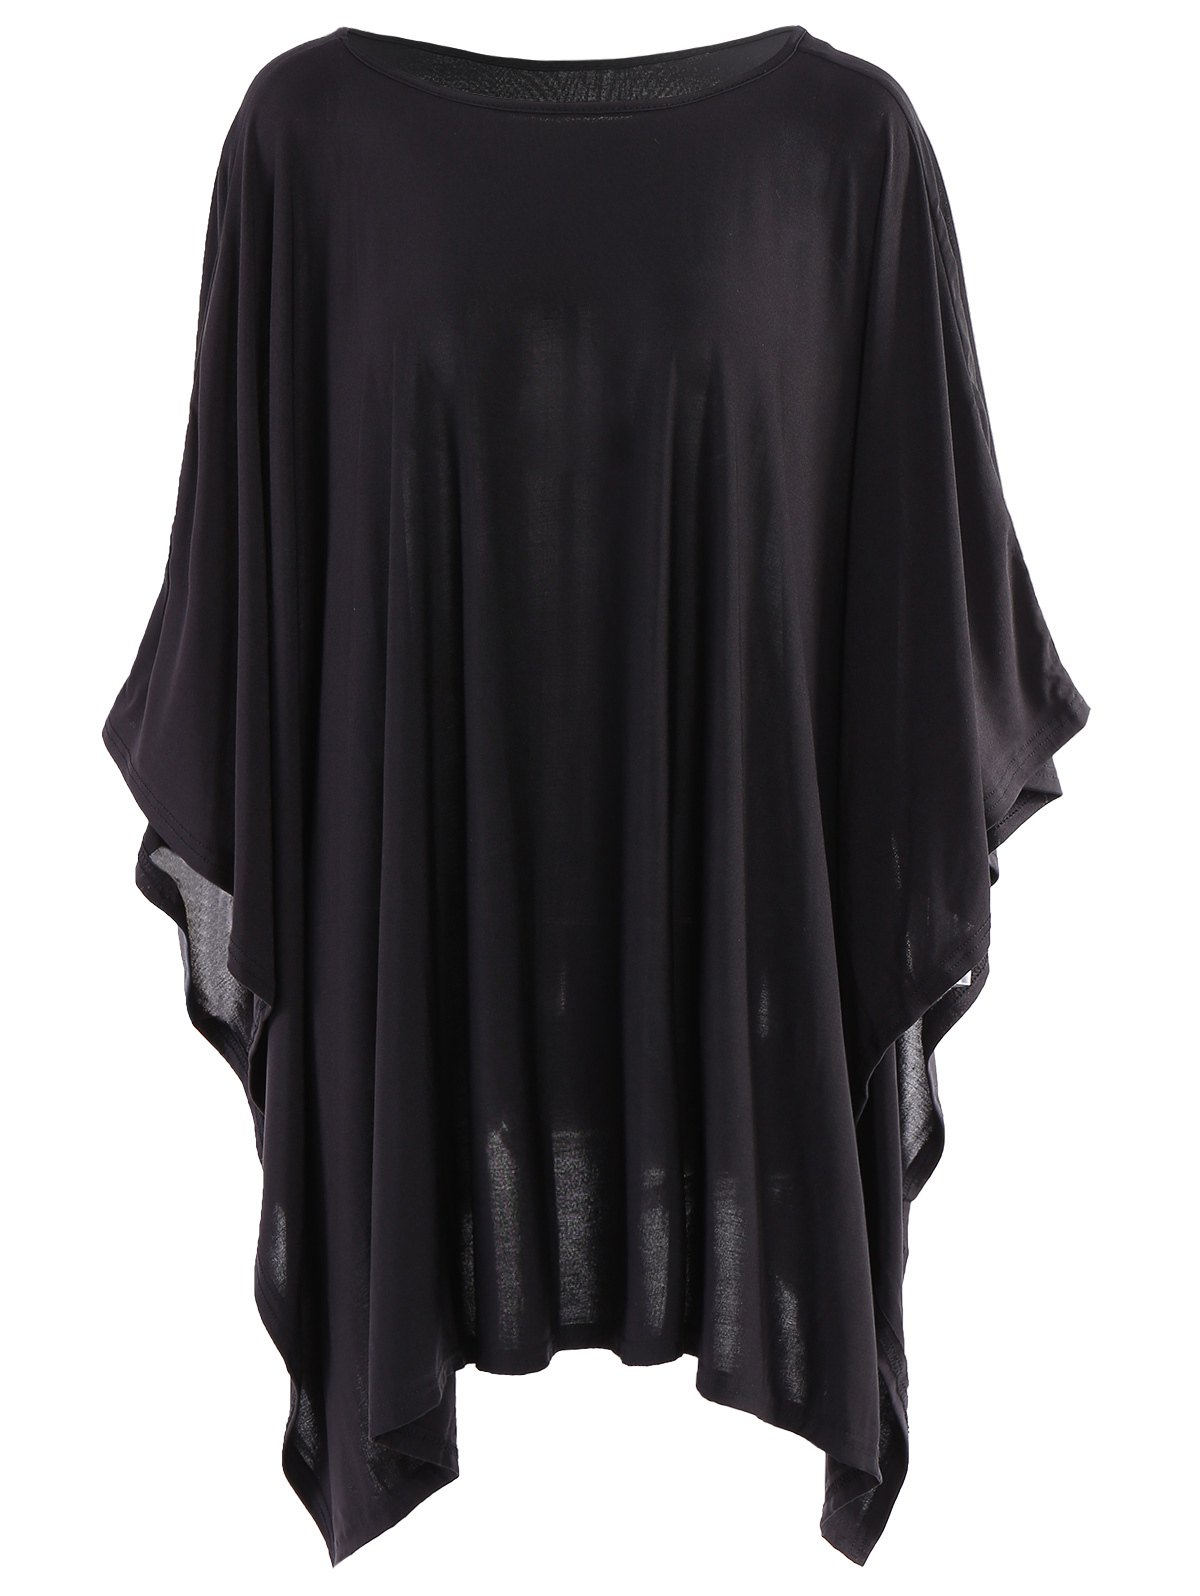 Simple Style Solid Color 3/4 Batwing Sleeve Pleated Blouse For Women - BLACK L